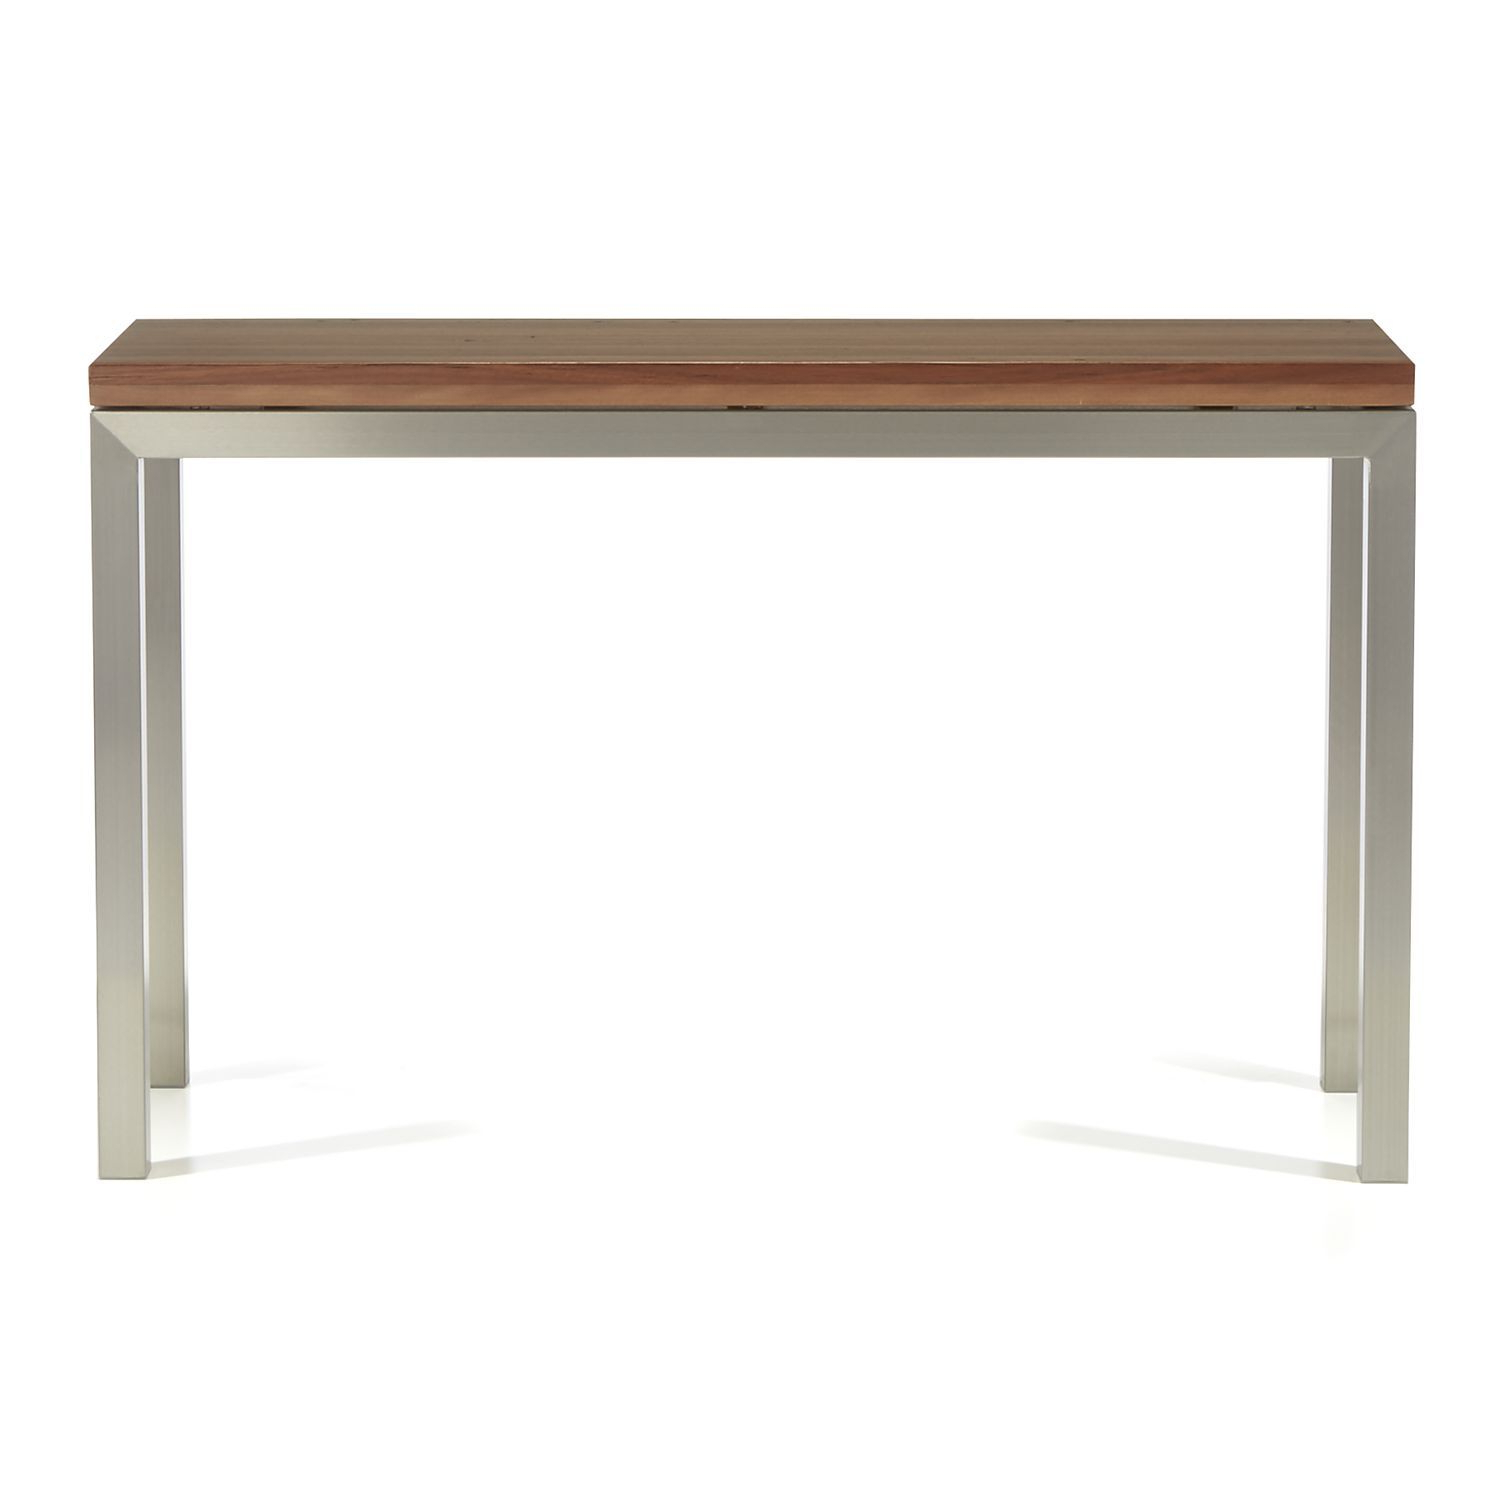 Parsons Reclaimed Wood Top/ Stainless Steel Base 48X16 Console With Regard To Parsons Concrete Top & Stainless Steel Base 48X16 Console Tables (View 18 of 20)